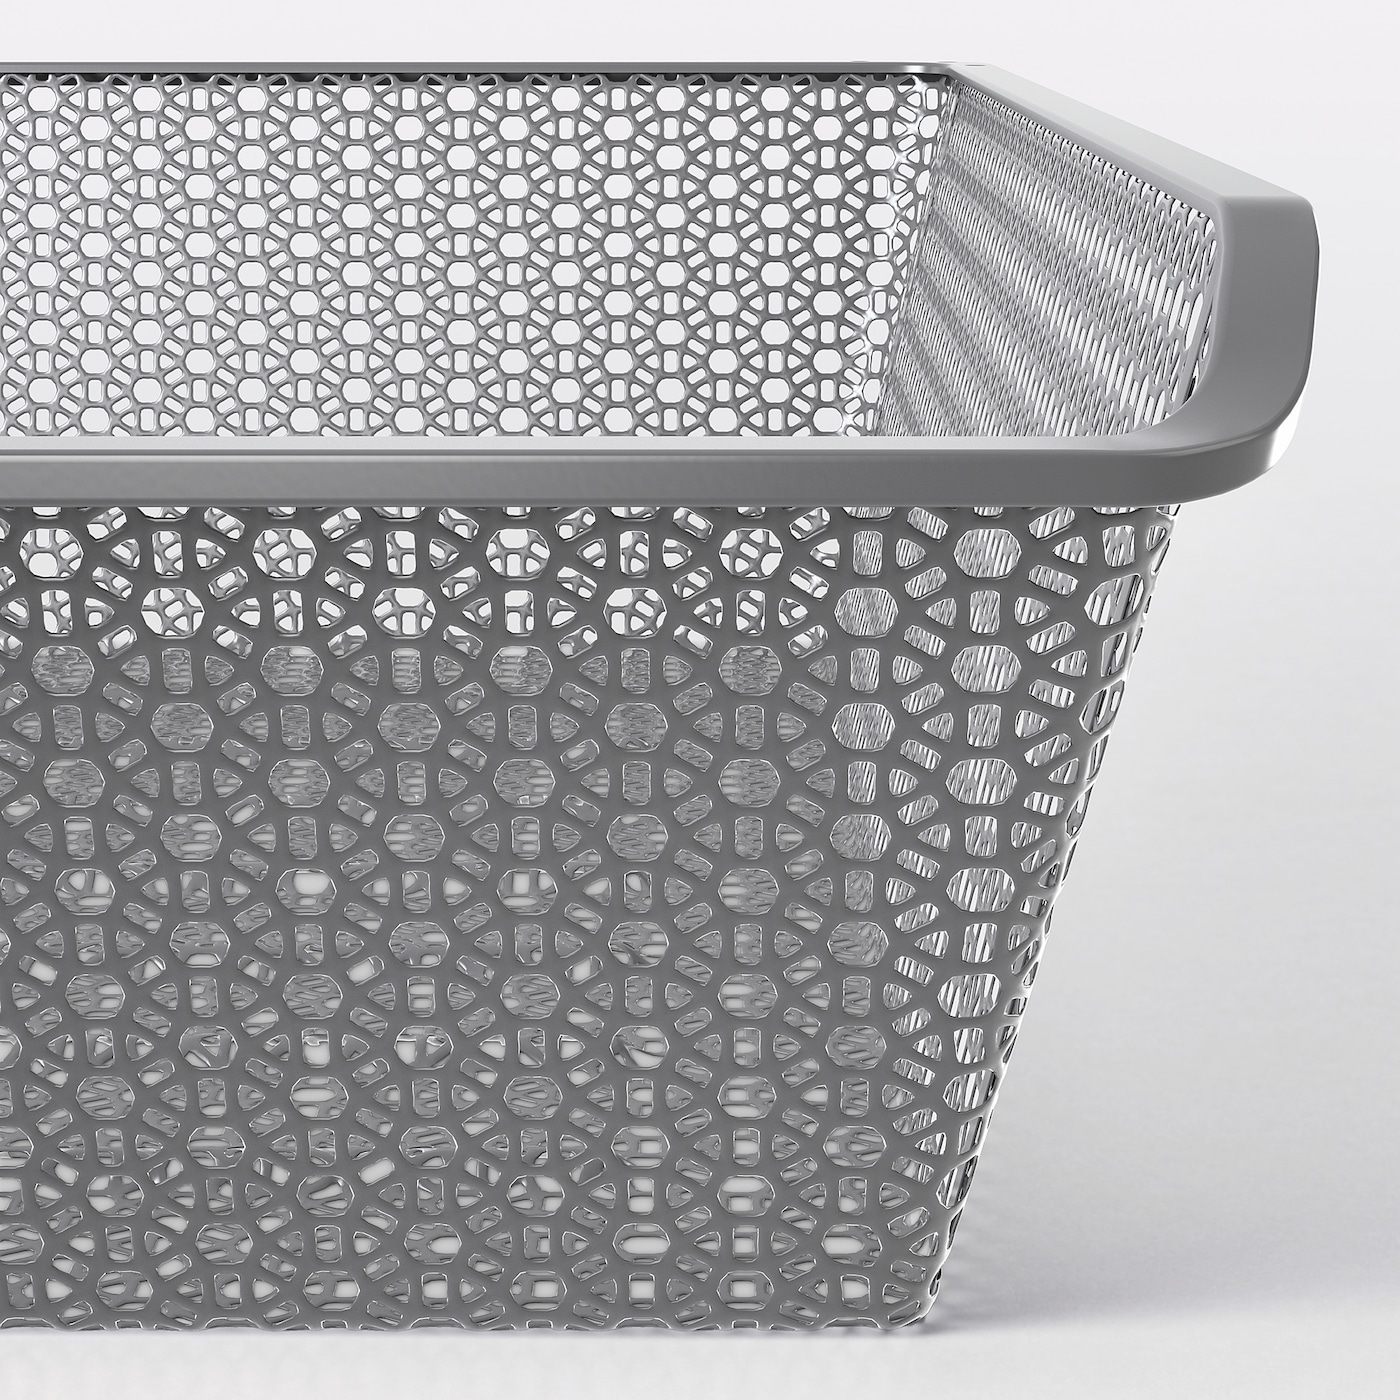 KOMPLEMENT Metal basket with pull-out rail, dark grey, 100x58 cm